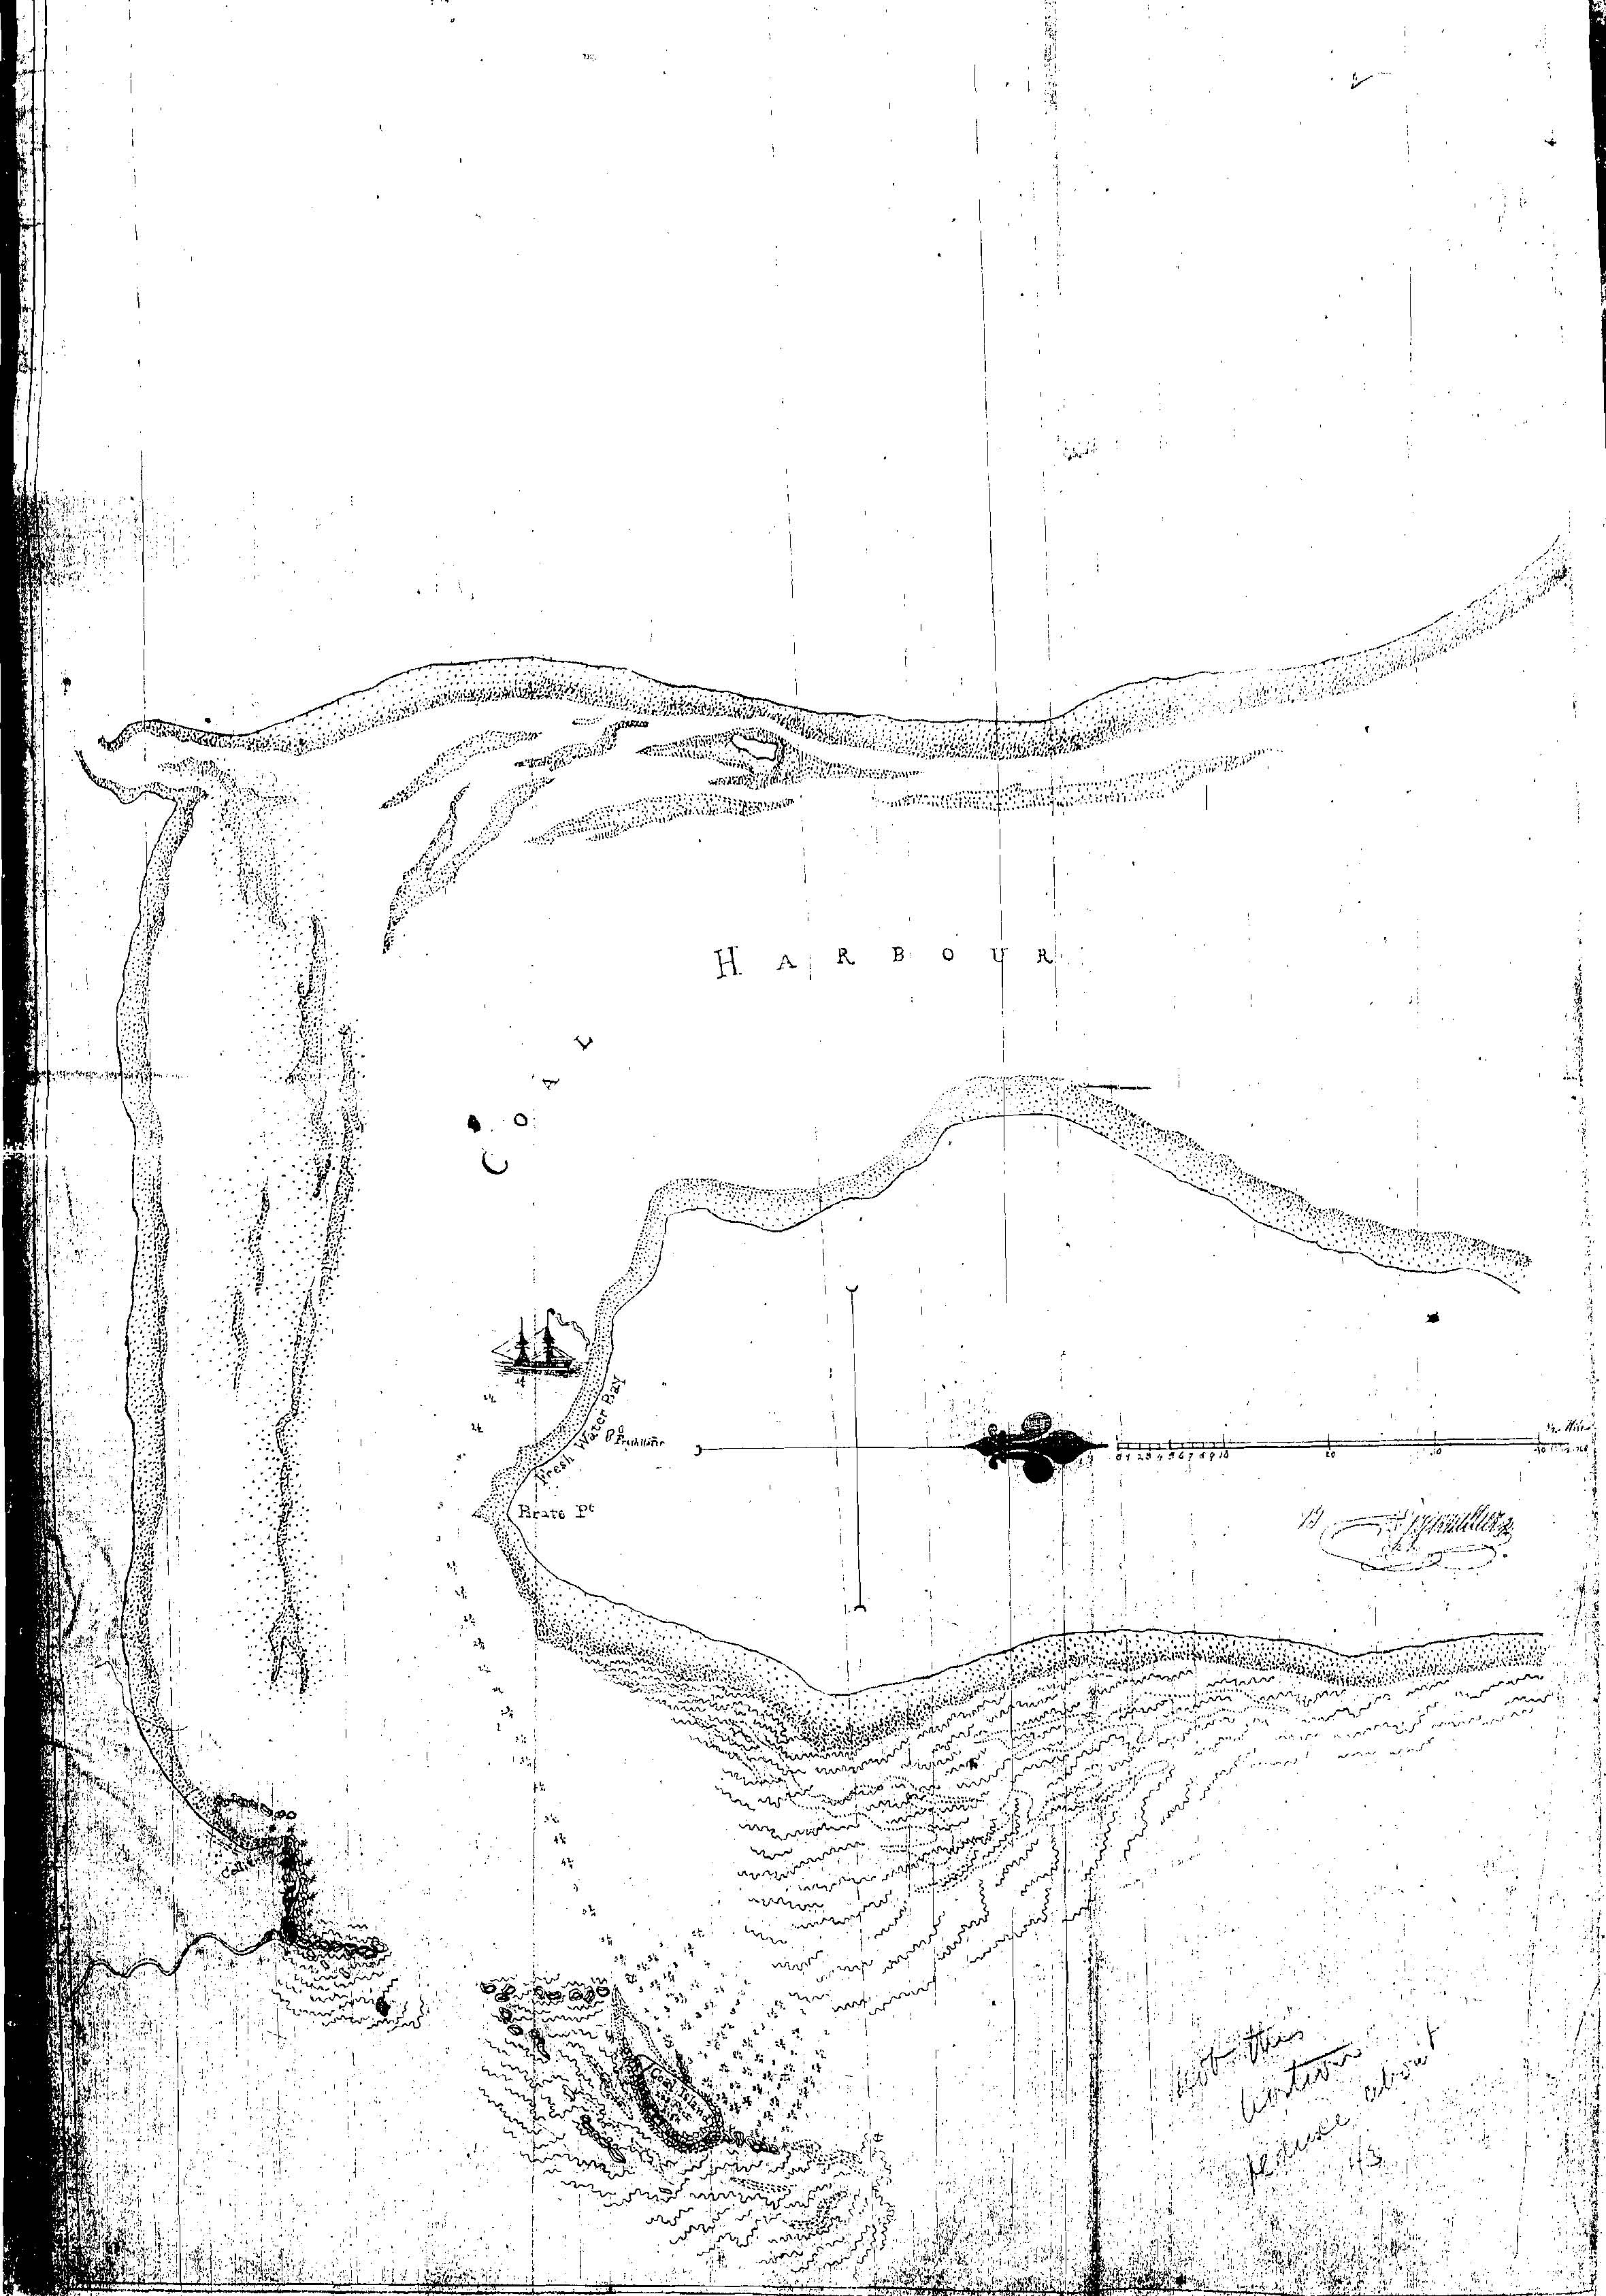 Barrallier Map located by Mr Doug Lithgow in 2006 on Mitchell Library Microcard, BT36 Image 0072.